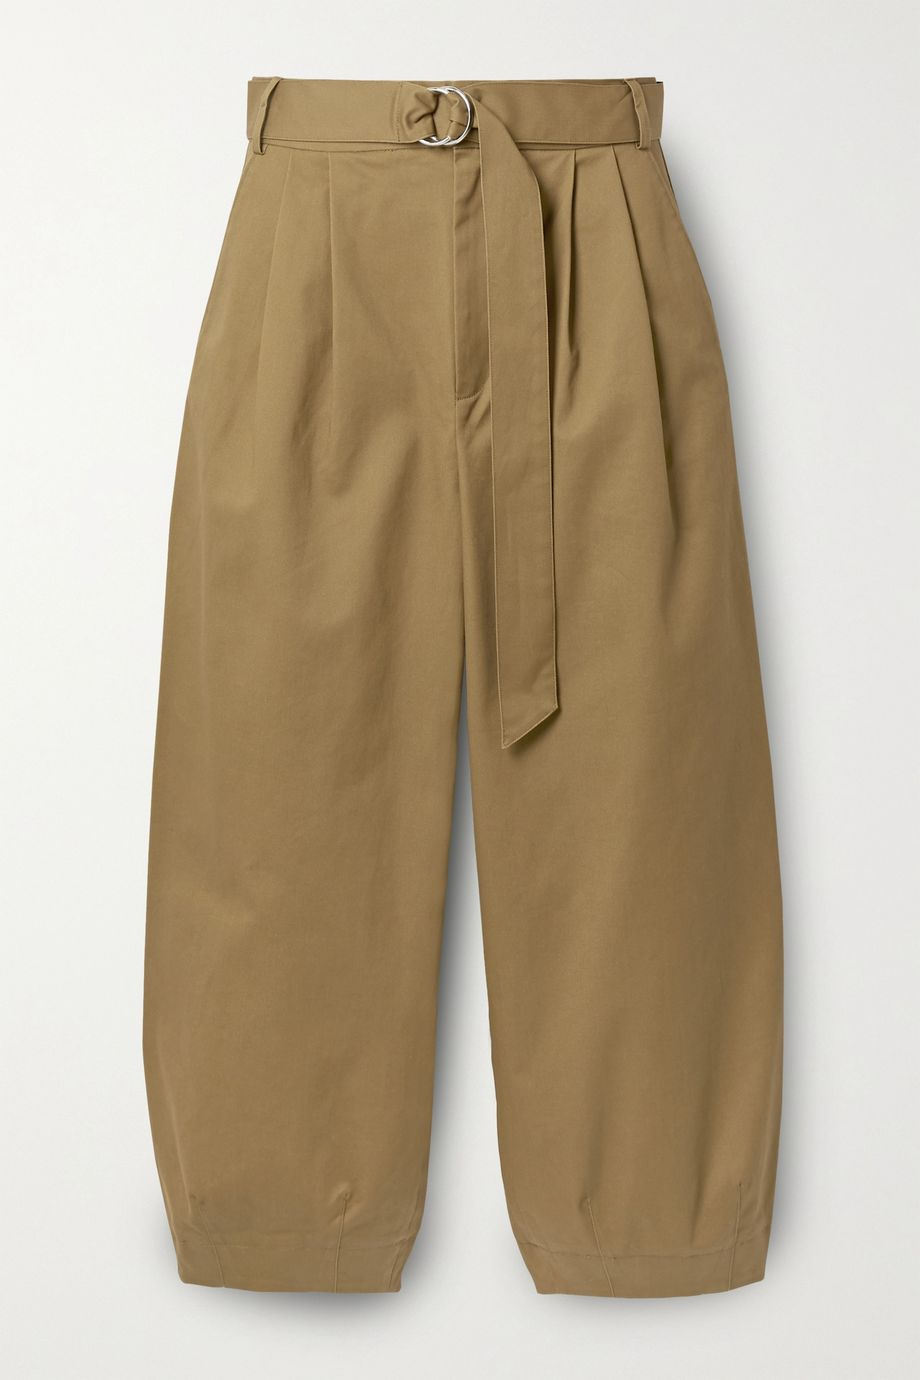 Tibi Myriam cropped pleated cotton-blend twill tapered pants